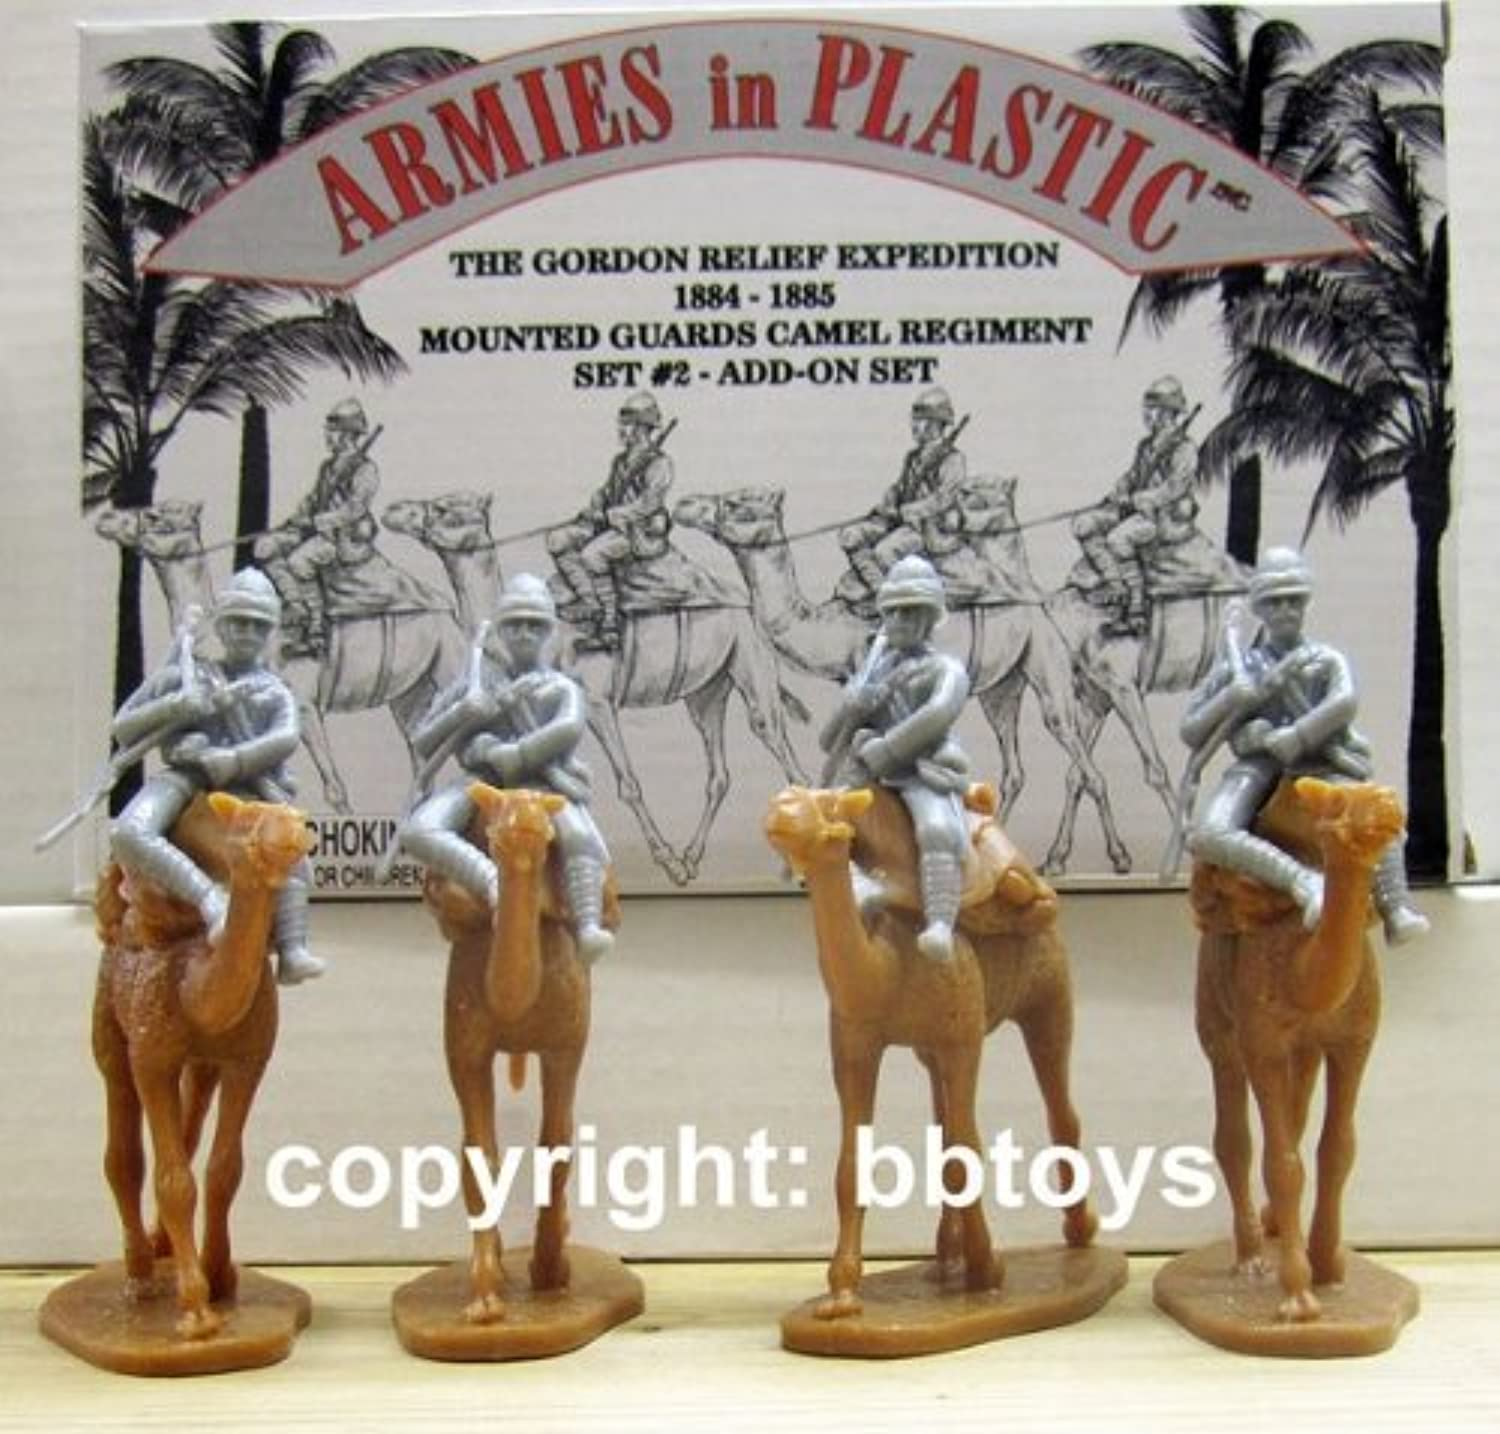 Egypt and Sudan - Gordon Relief Expedition Camel Corps Mounted Guard Set  2  8 piece set of 54mm Plastic Army Men Figures - 1 32 Scale by Armies in Plastic